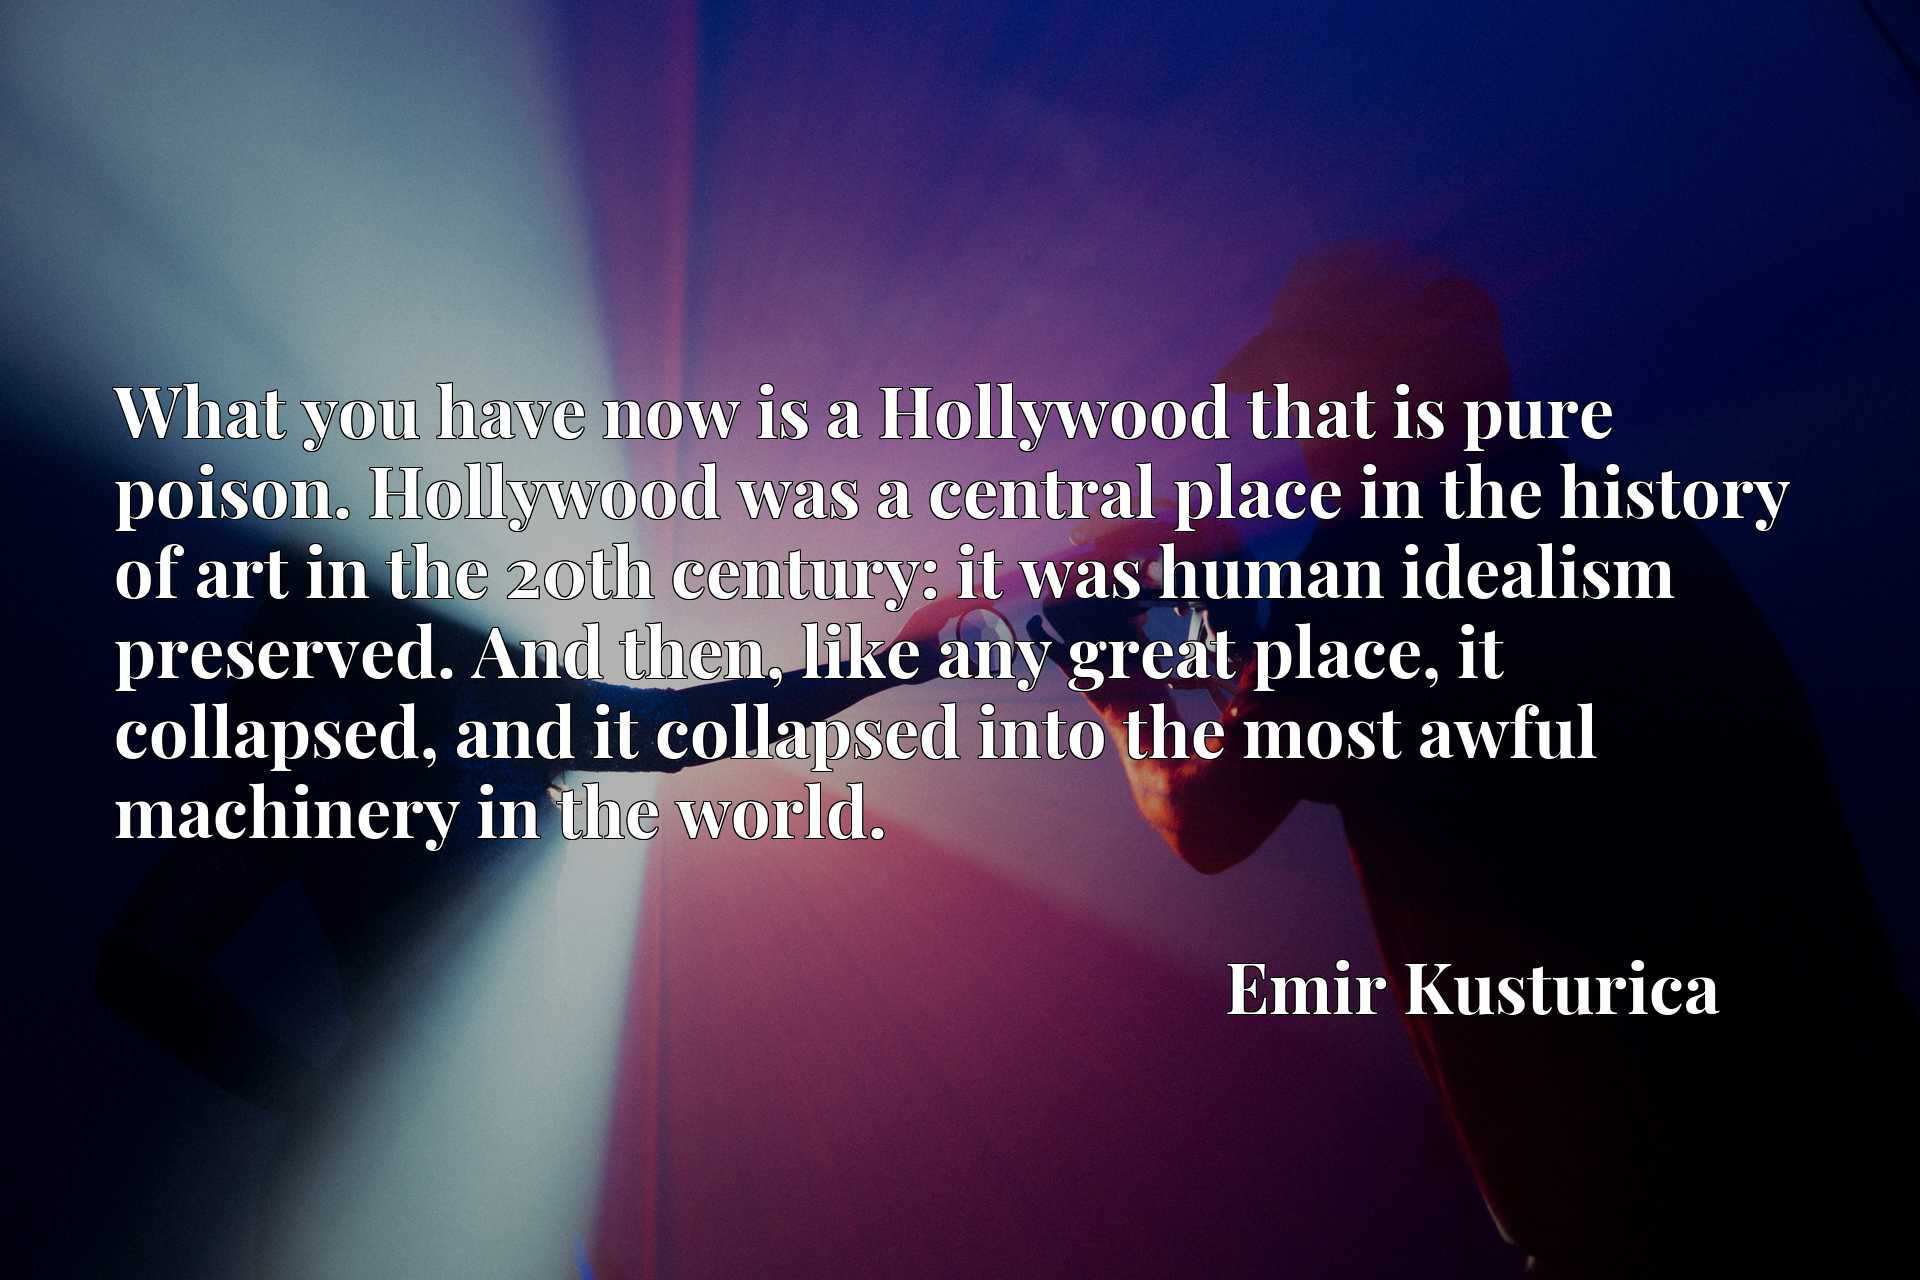 What you have now is a Hollywood that is pure poison. Hollywood was a central place in the history of art in the 20th century: it was human idealism preserved. And then, like any great place, it collapsed, and it collapsed into the most awful machinery in the world.